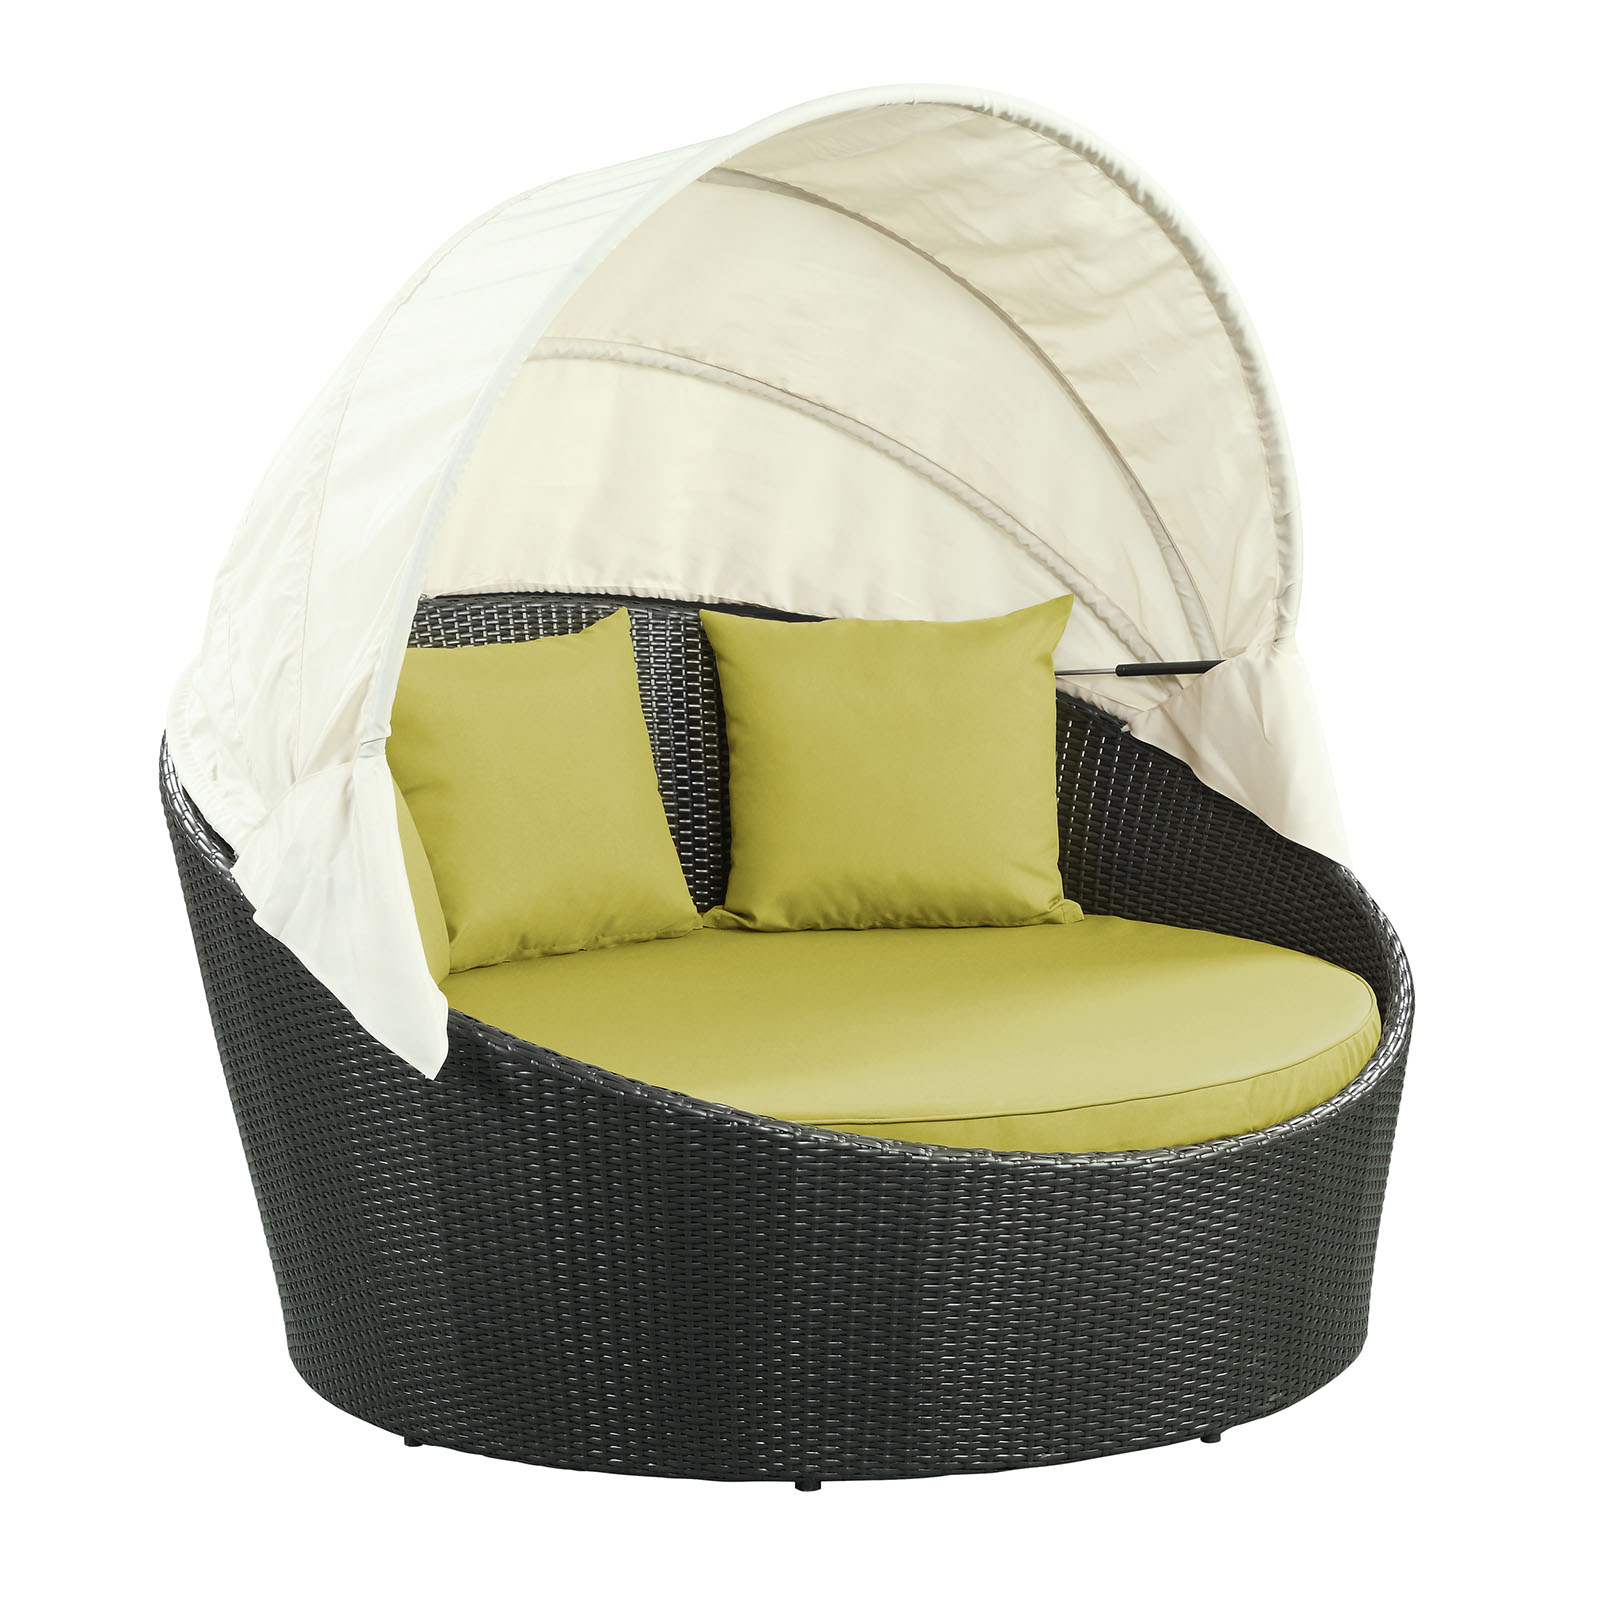 Siesta All-Weather Wicker Canopy Daybed